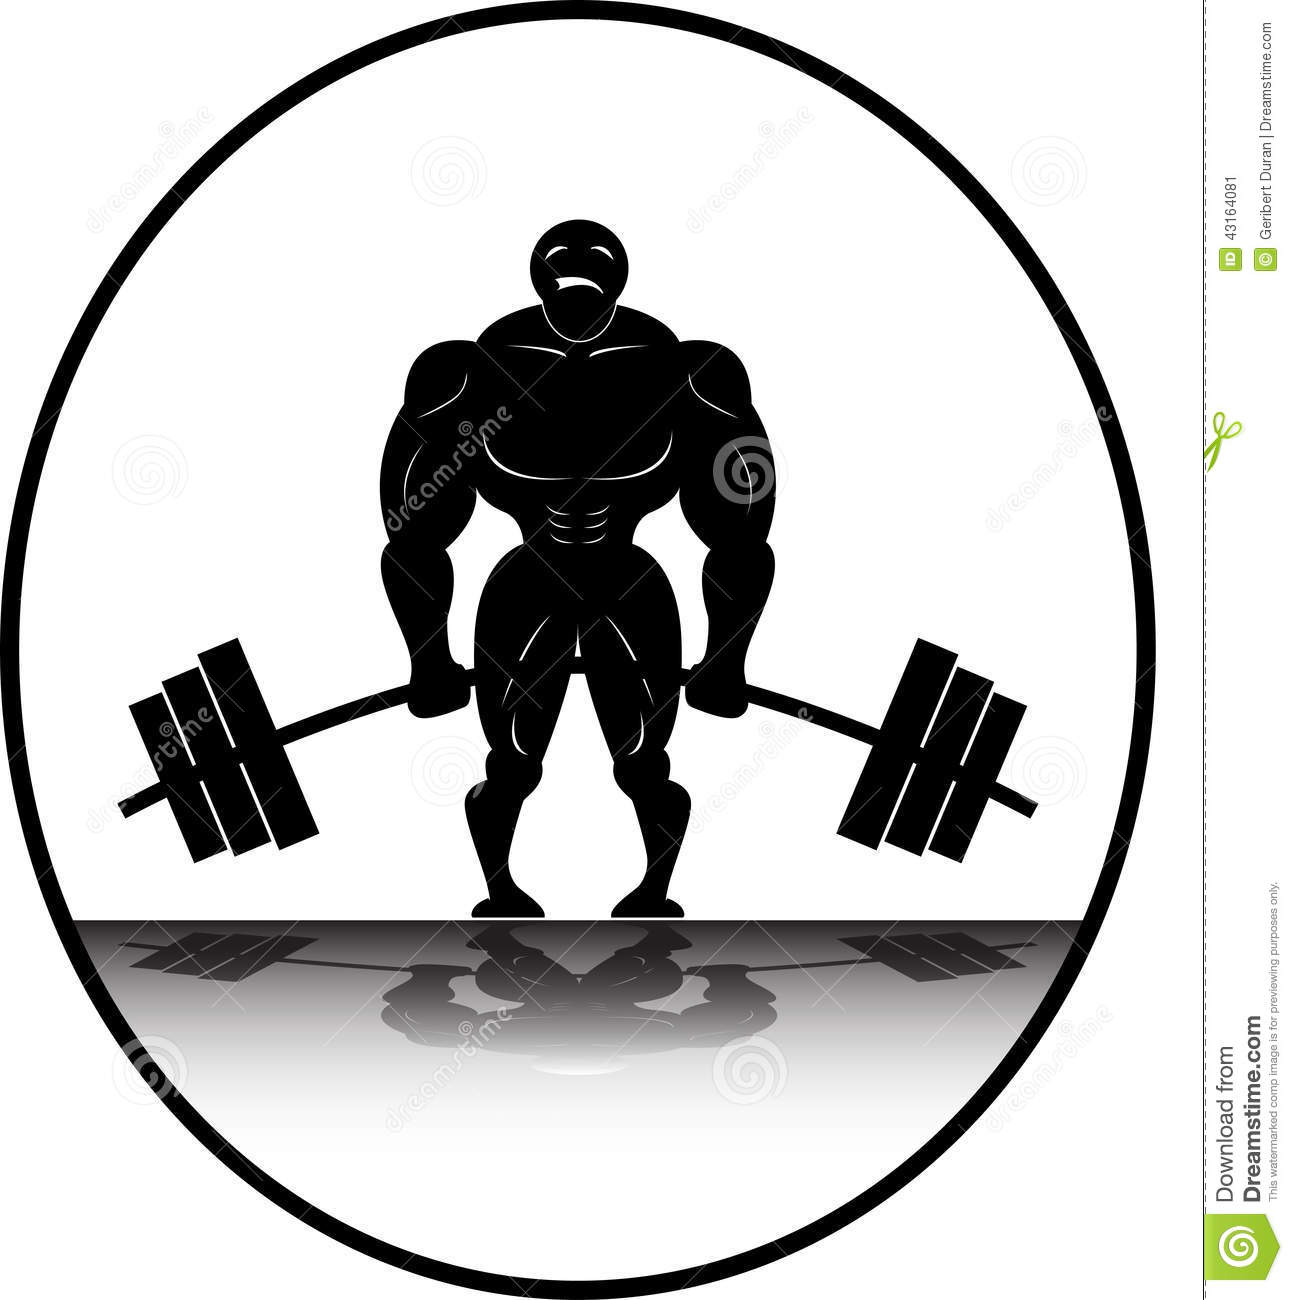 Collection of free download. Barbell clipart powerlifting